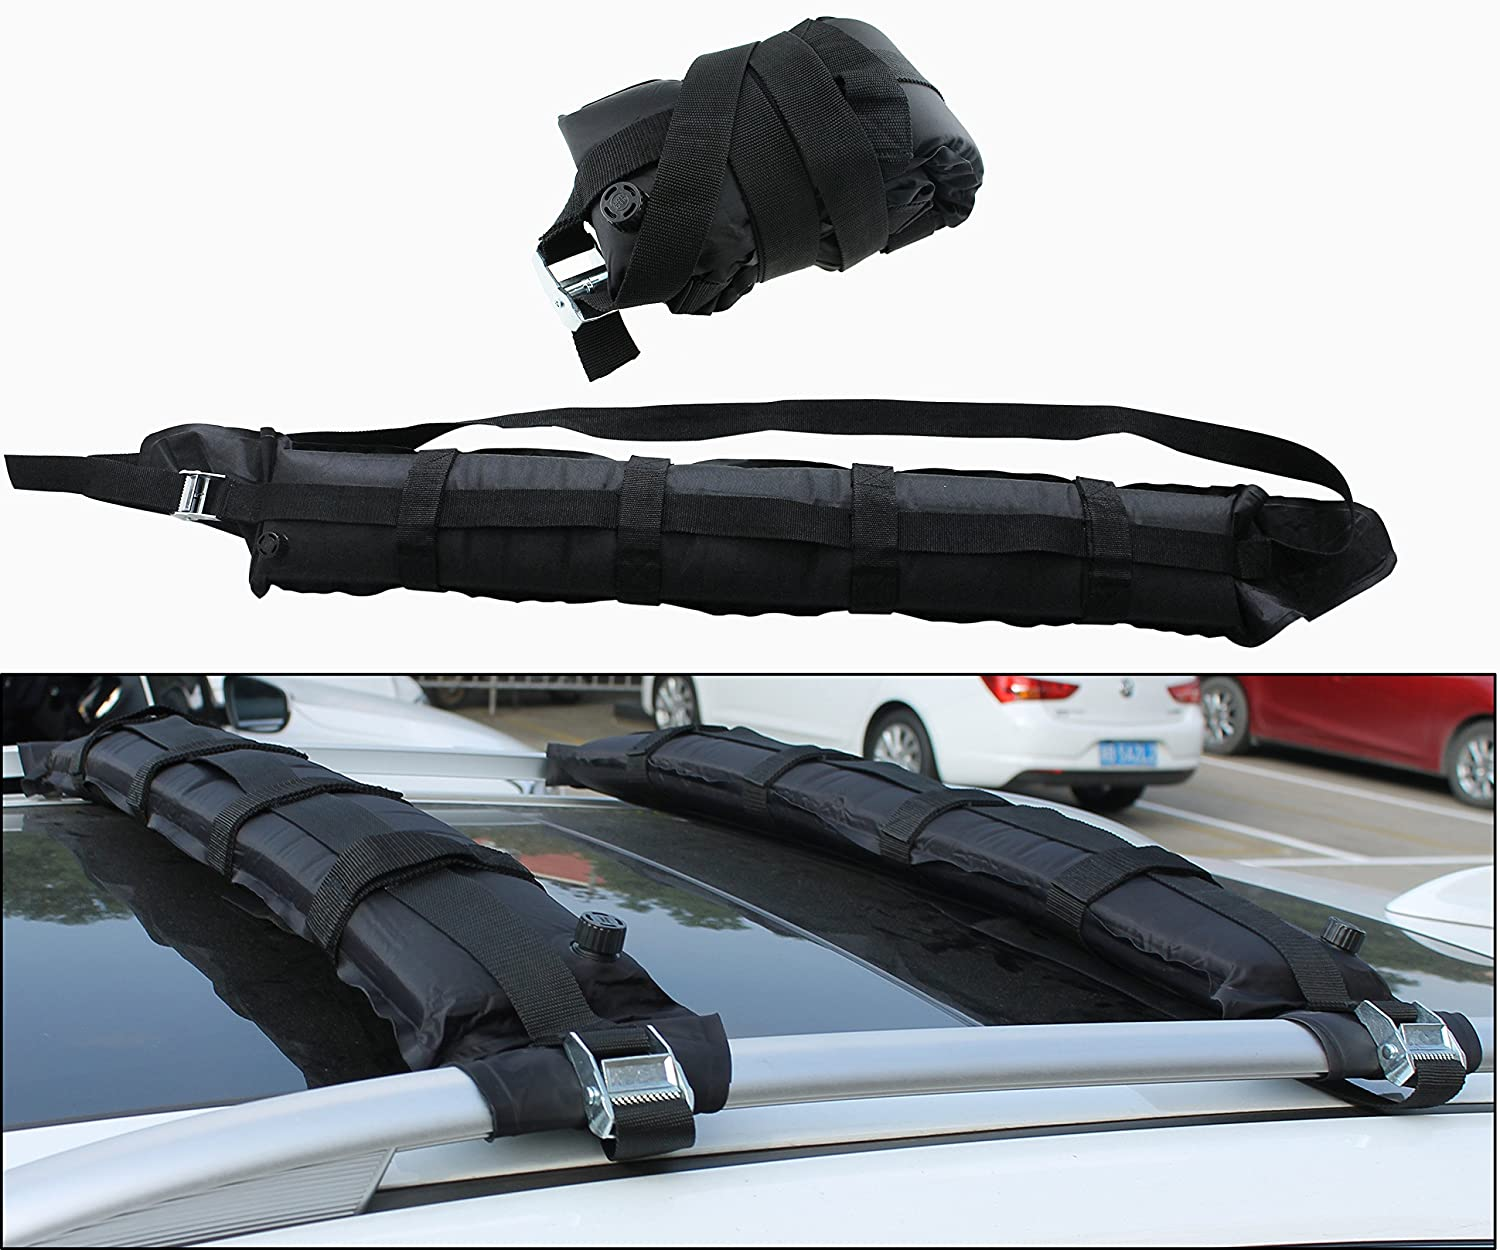 snowboard automotive load ca roof luggage rack for capacity amazon lb ski car kayak inflatable soft iztor driving dp carrier